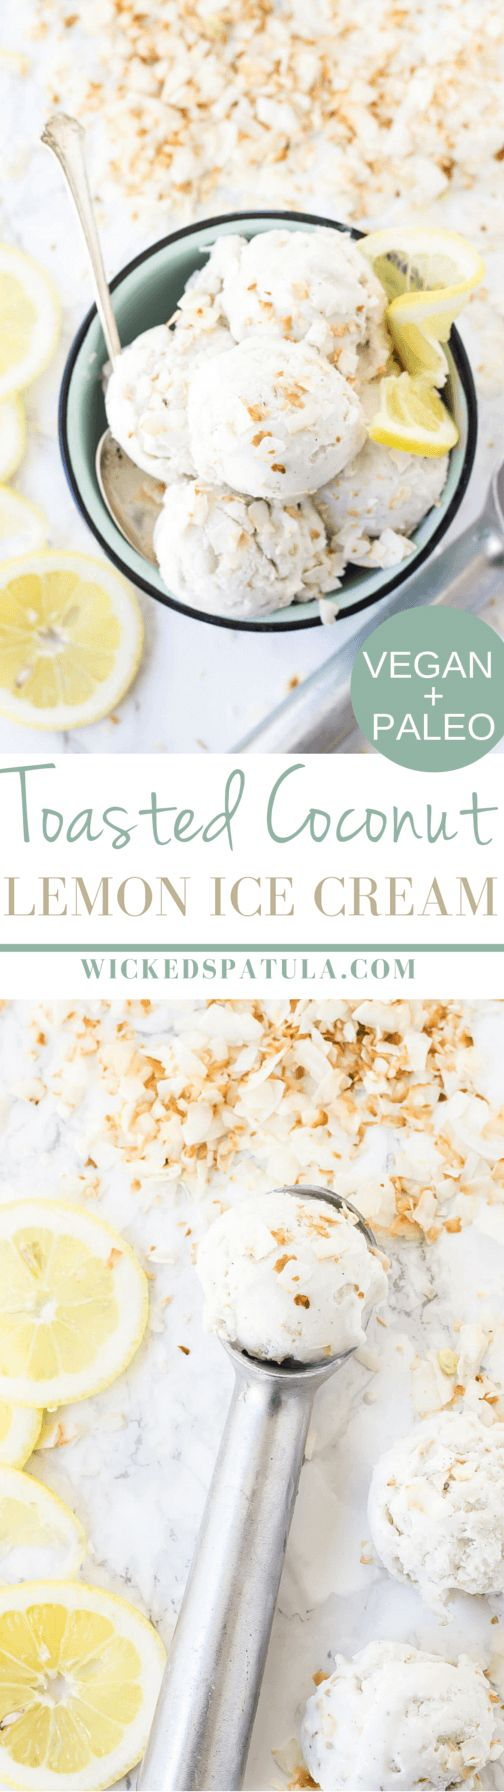 Toasted Coconut Lemon Ice Cream - Vegan + Paleo